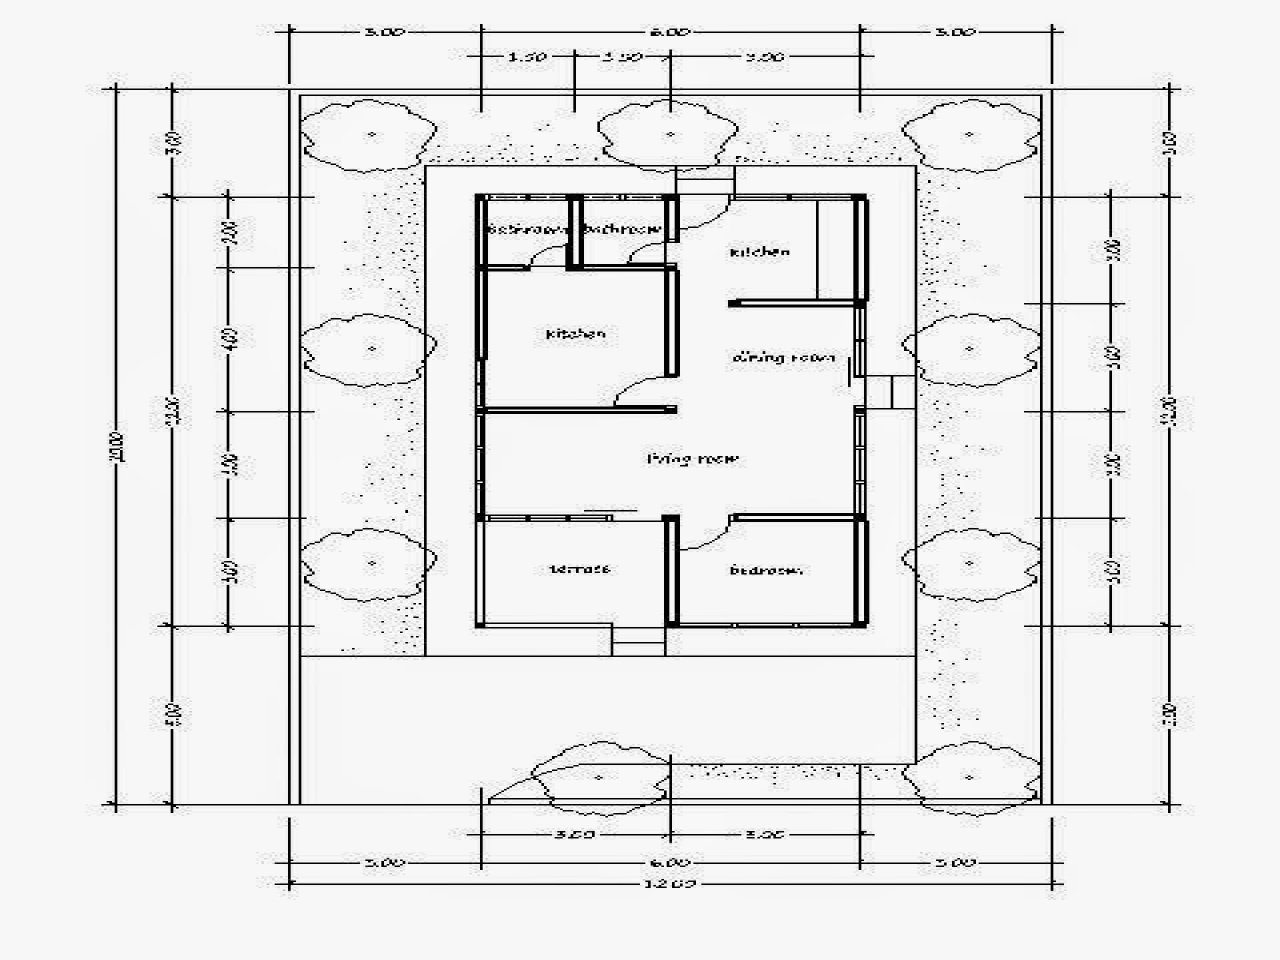 Small house plans beautiful simple house plans simple for Simple tropical house plans